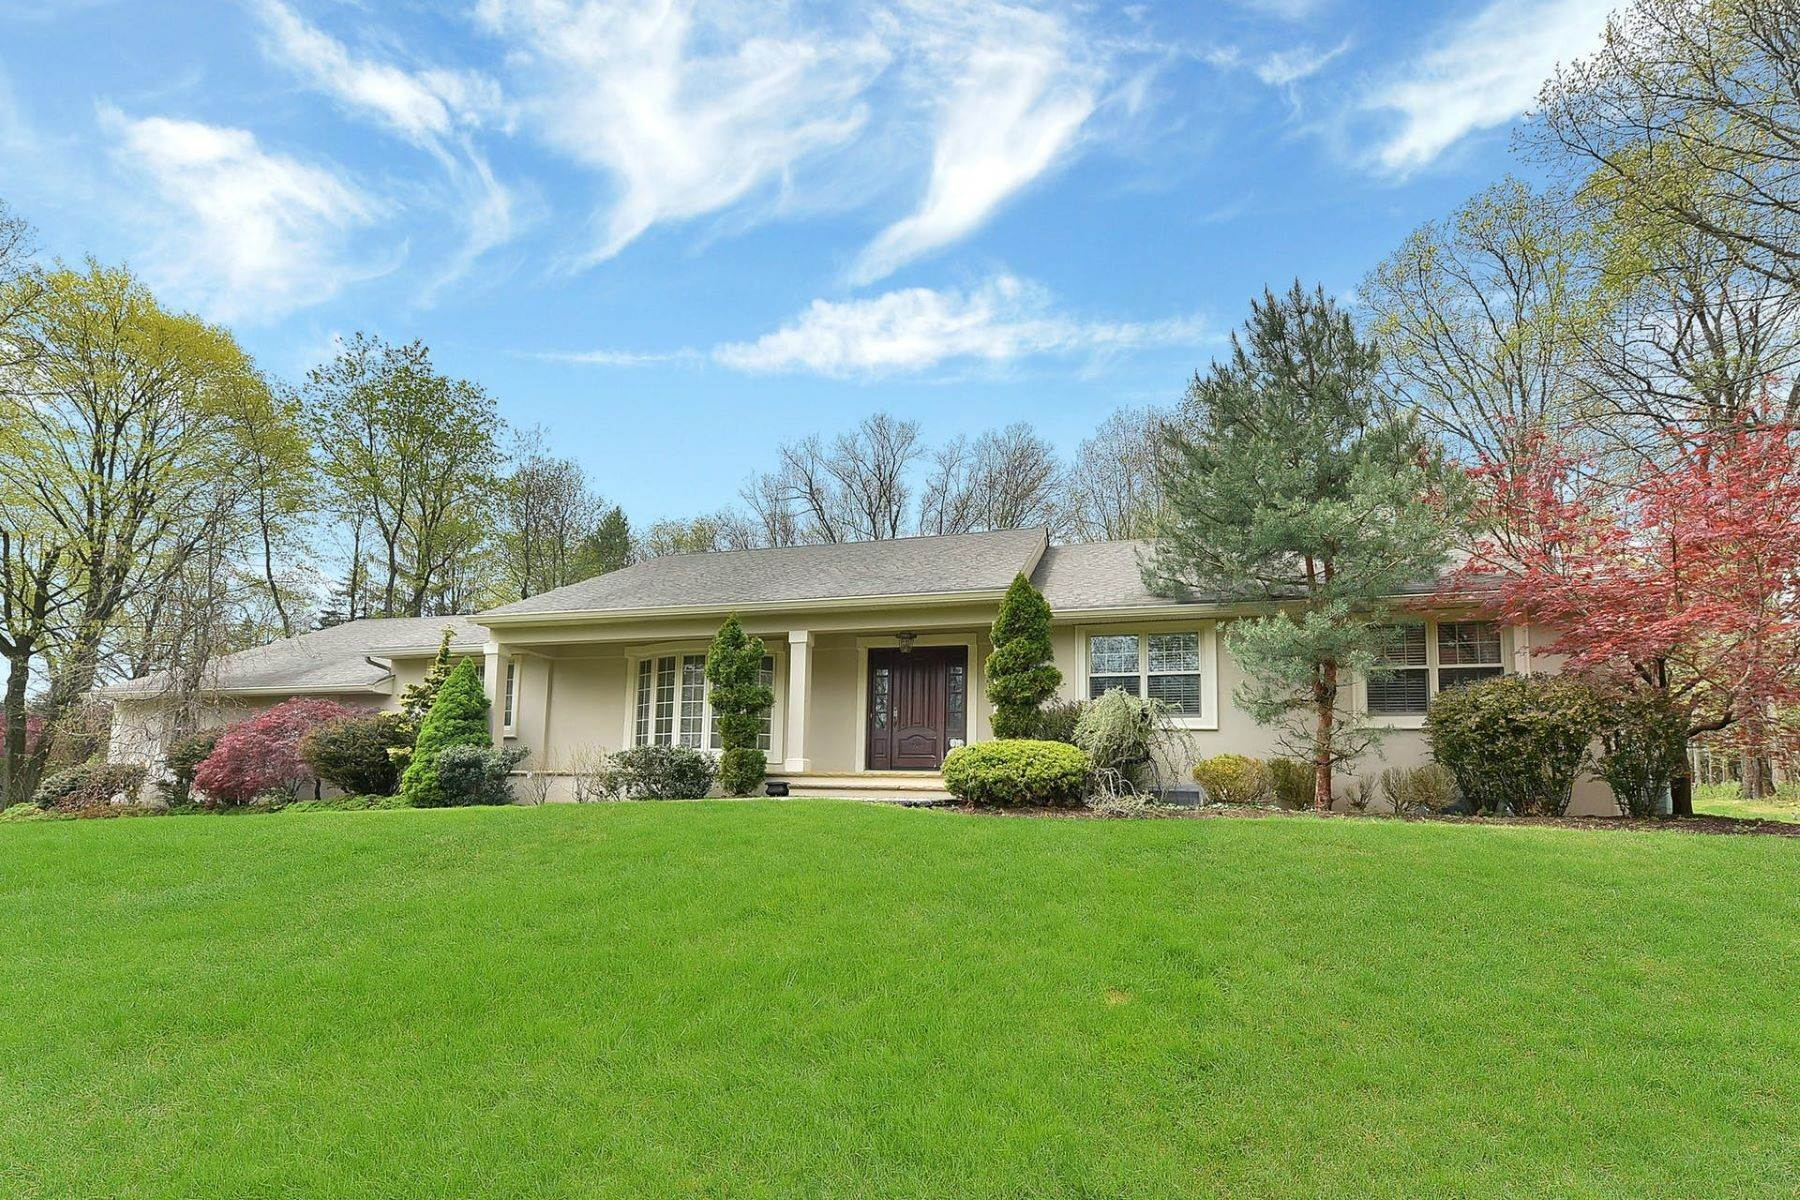 Single Family Homes for Sale at 572 Kiowa Drive Franklin Lakes NJ 07417 572 Kiowa Drive Franklin Lakes, New Jersey 07417 United States